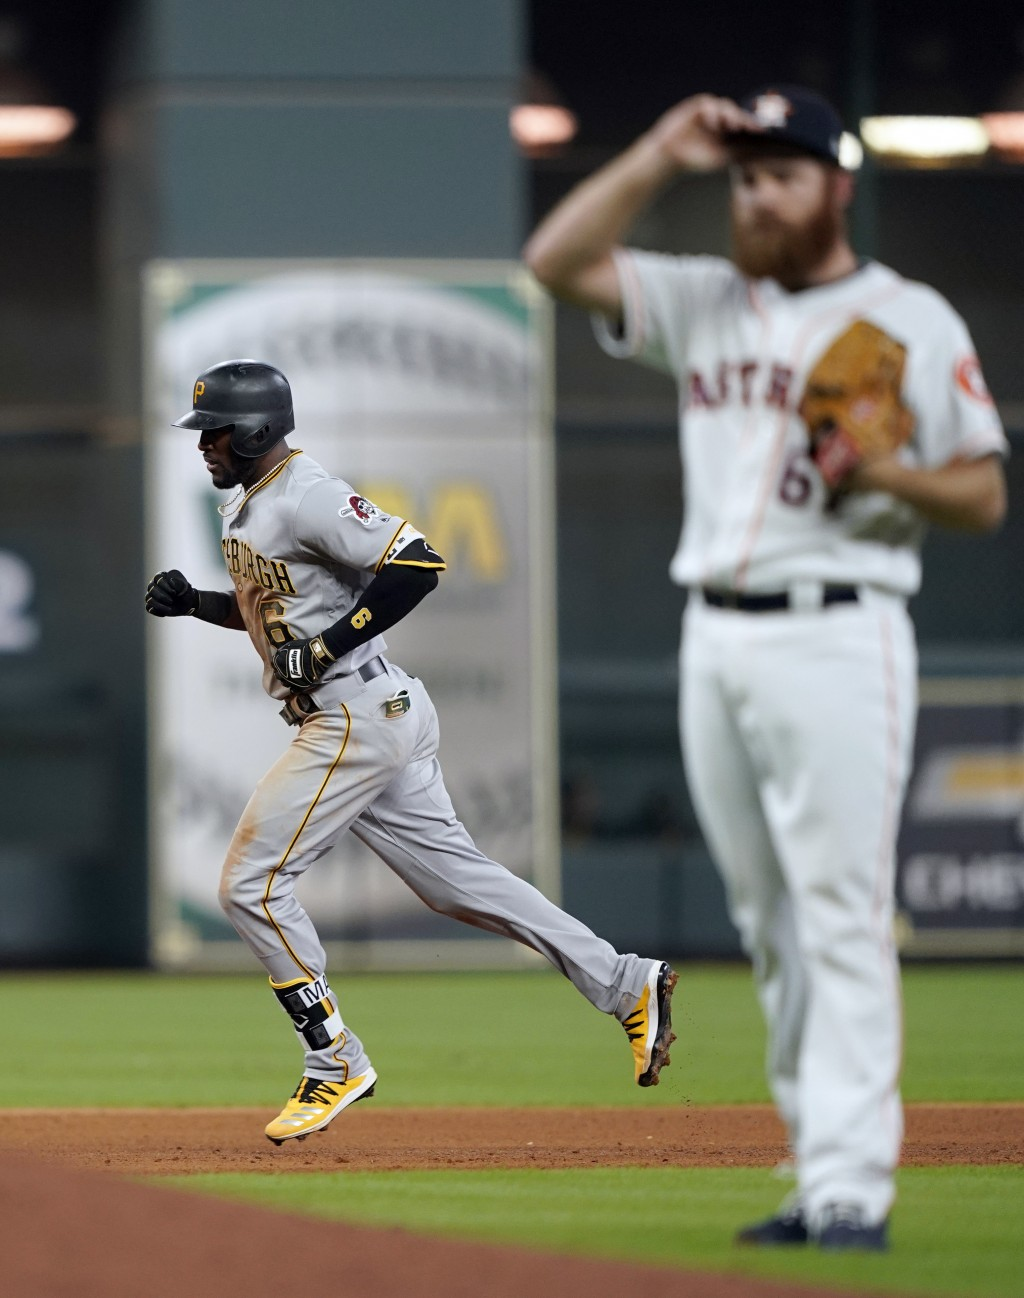 Pittsburgh Pirates' Starling Marte (6) runs the bases after hitting a home run off Houston Astros pitcher Cy Sneed, right, during the fifth inning of ...